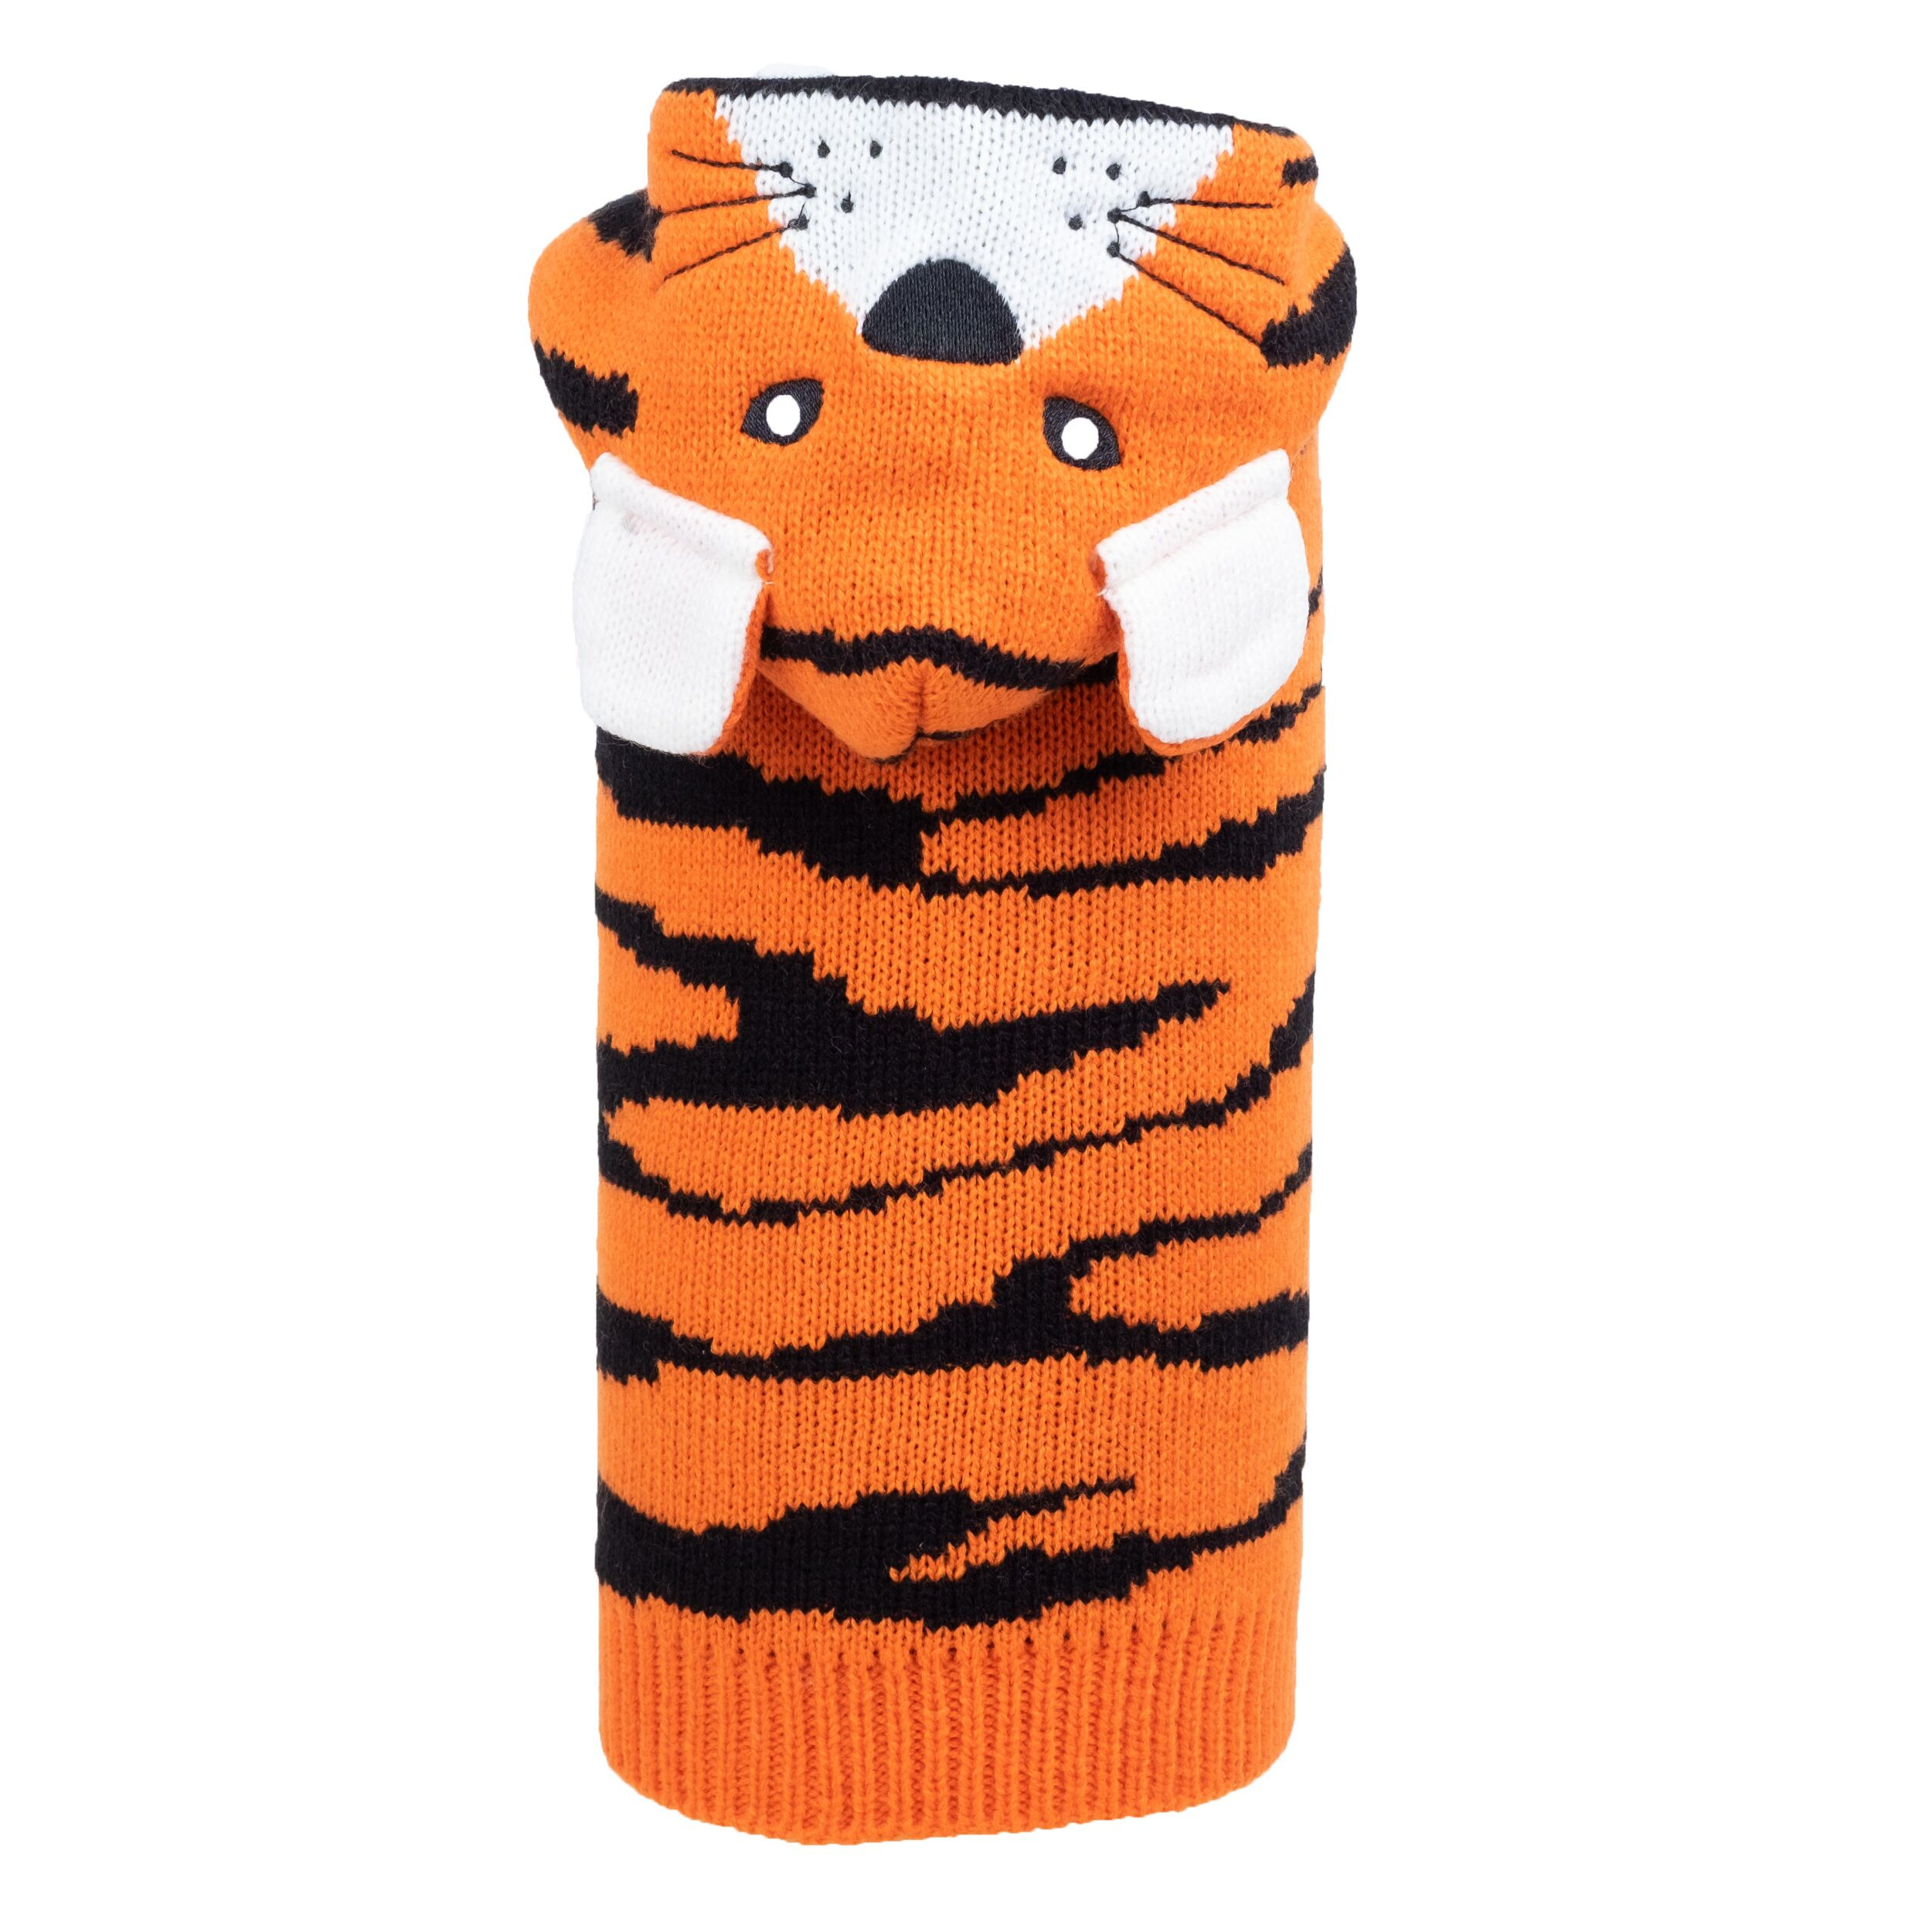 The Worthy Dog Hoodie, Tiger, X-Small